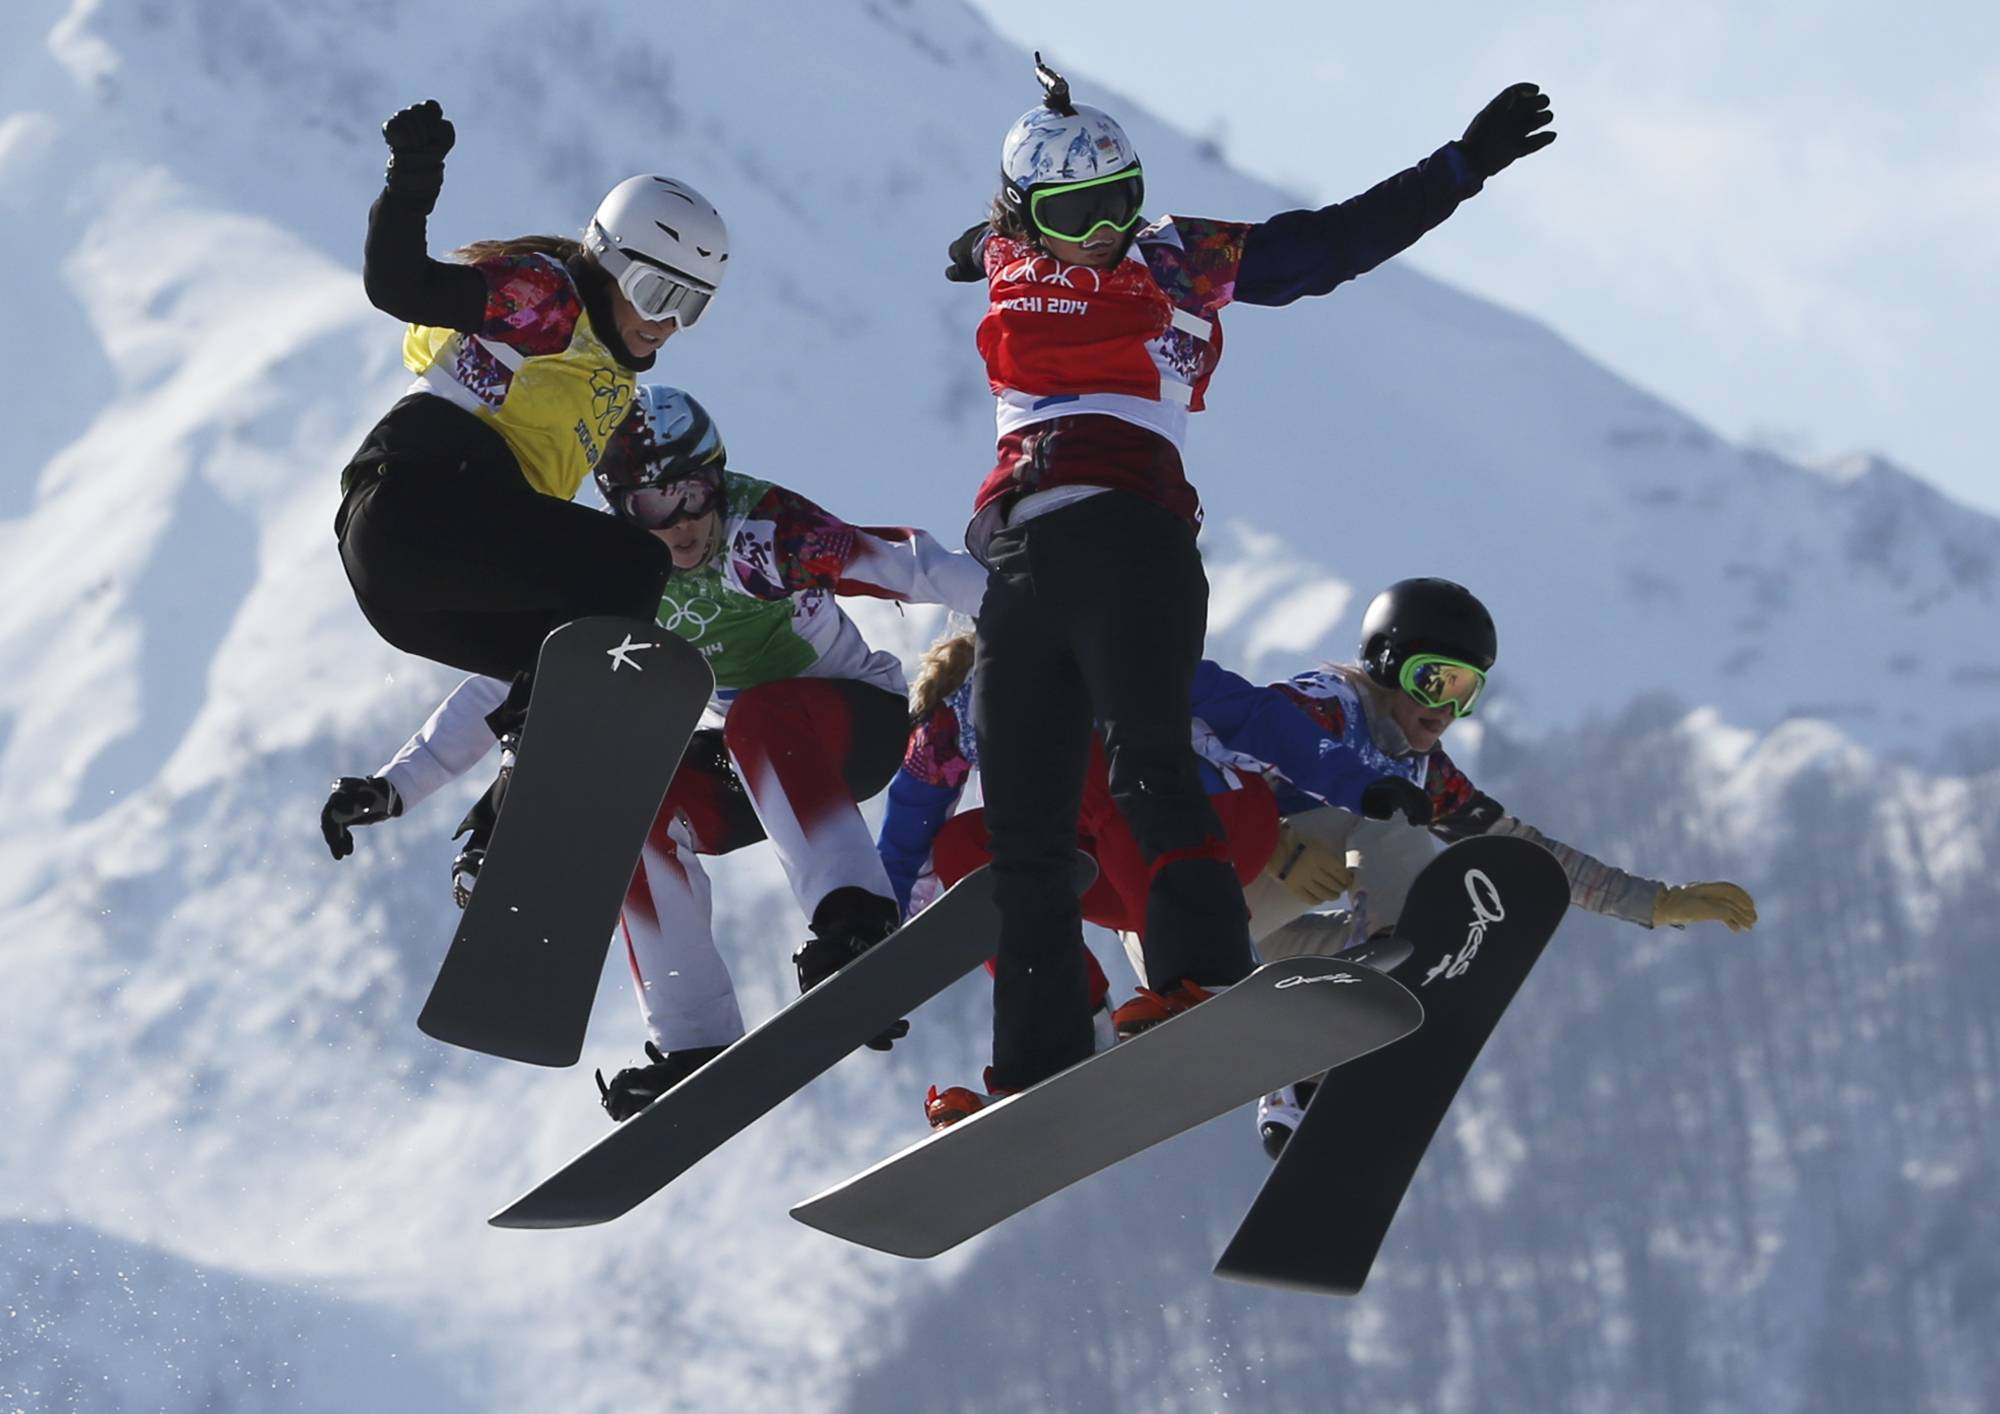 Czech Republic's Eva Samkova, second right, leads the field in the women's snowboard cross final at the Rosa Khutor Extreme Park, at the 2014 Winter Olympics, Sunday, Feb. 16, 2014, in Krasnaya Polyana, Russia. Samkova went on to win the gold medal. The other boarders are, from left, Bulgaria's Alexandra Jekova, Canada's Dominique Maltais, France's Chloe Trespeuch (obscured), and United States' Faye Gulini.